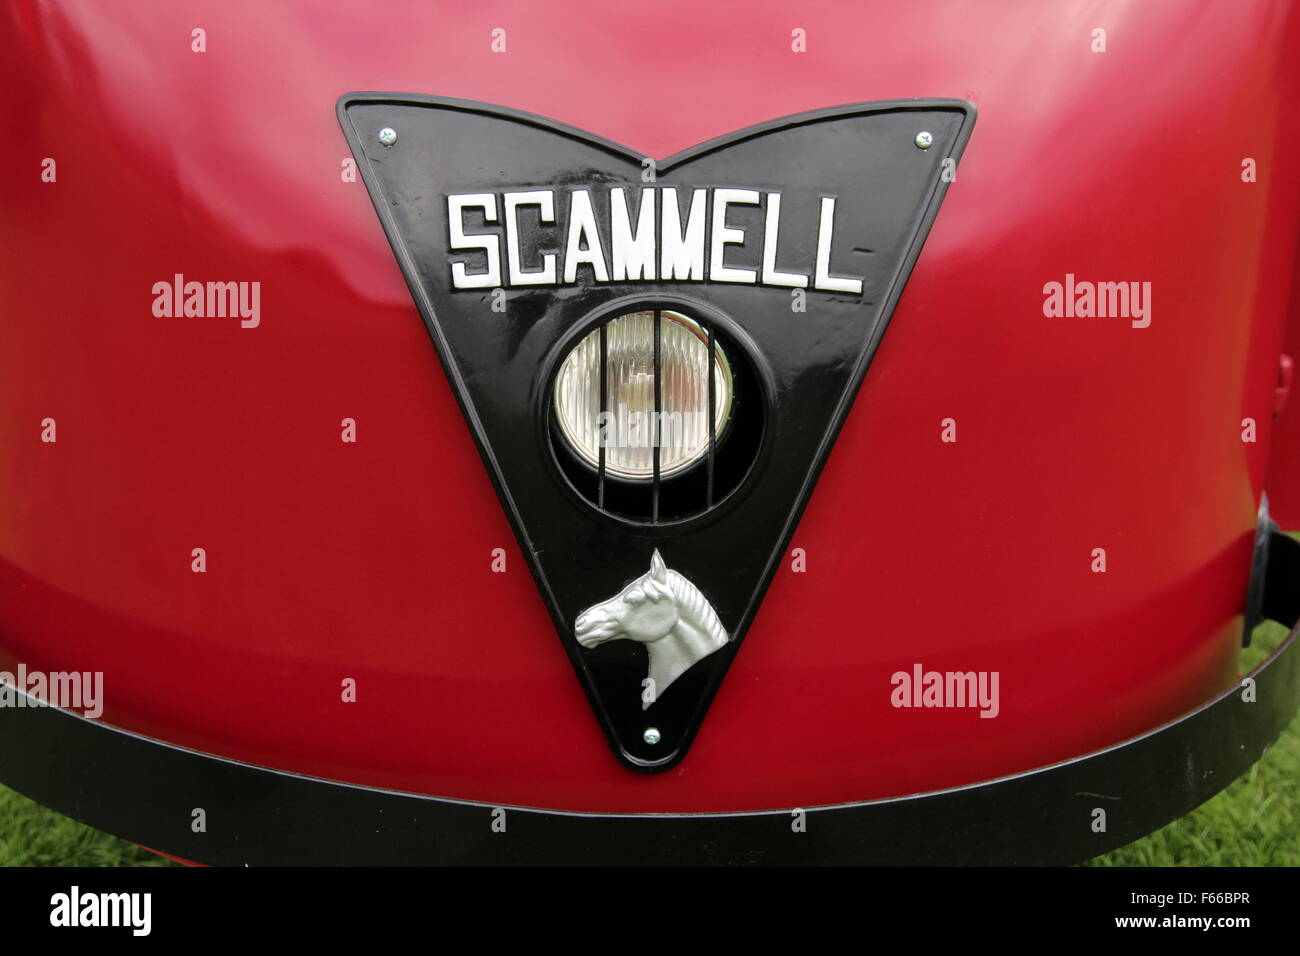 Name plate on a Scammell vehicle - Stock Image